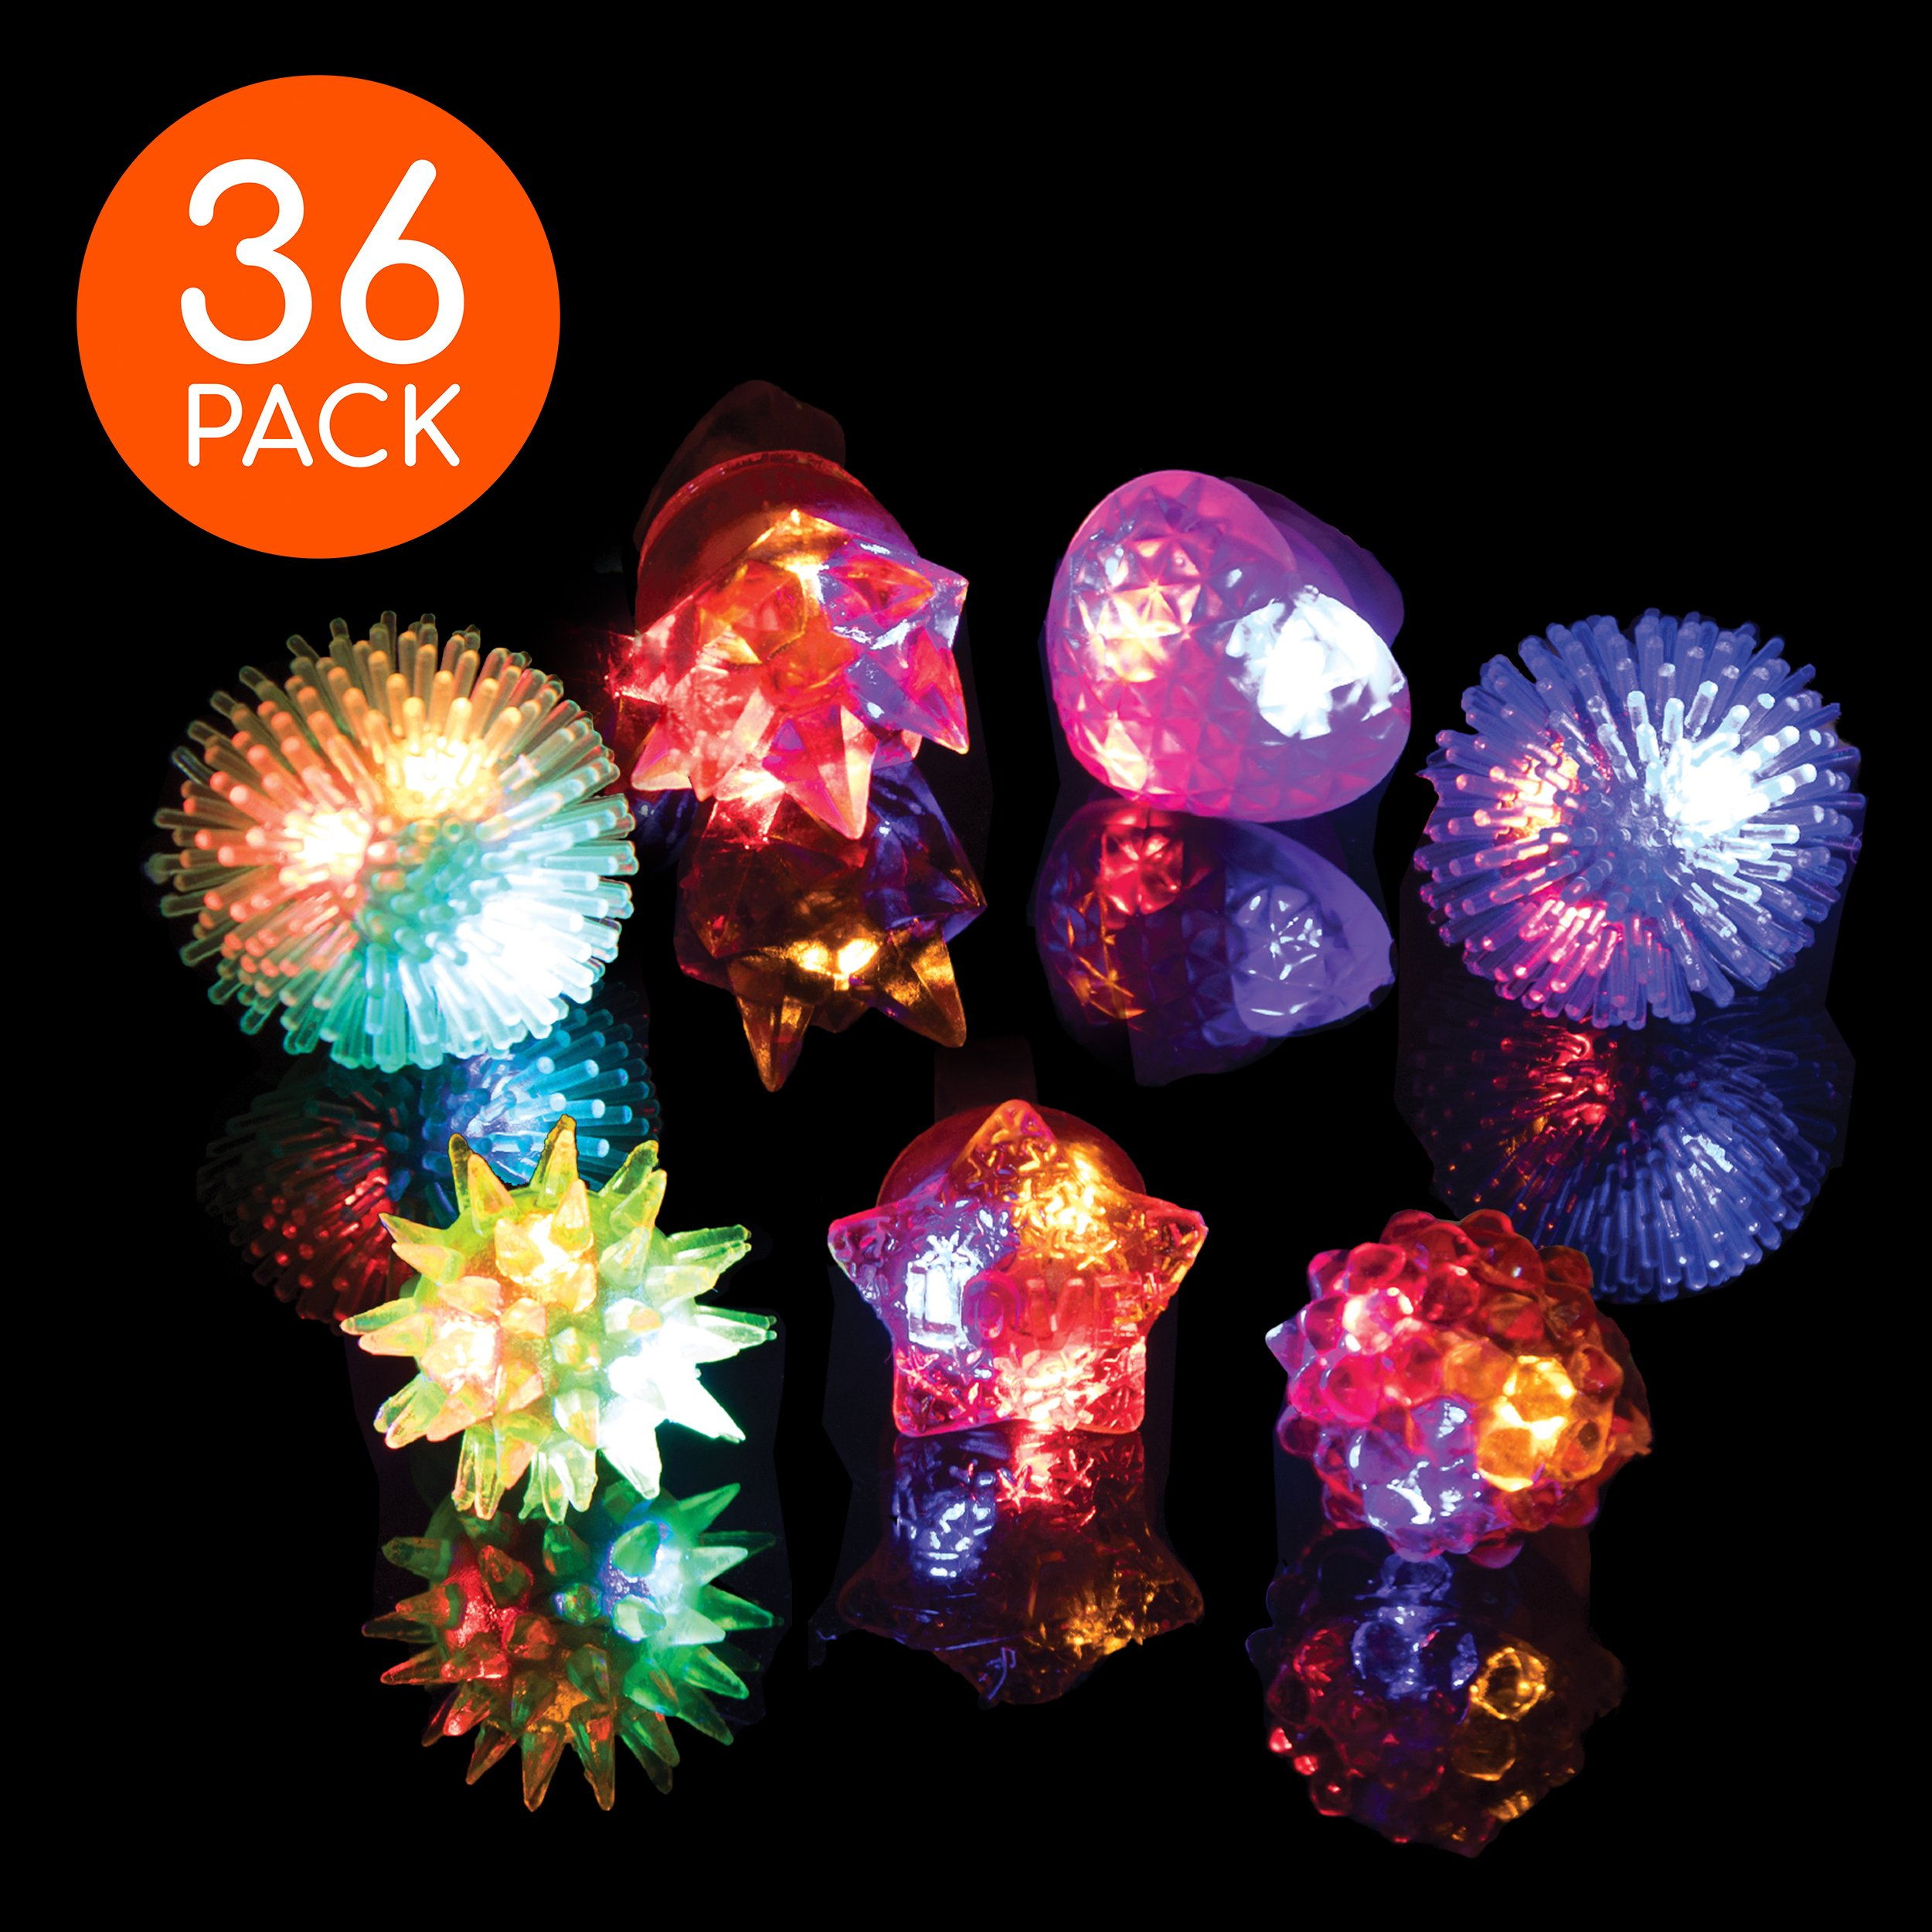 LED Party Favors for Kids – 36 Pc LED Glow in The Dark Jelly Rings Party Favors Bulk Glow in The Dark Party Supplies in Assorted LED Ring Colors by PartySticks (Image #1)